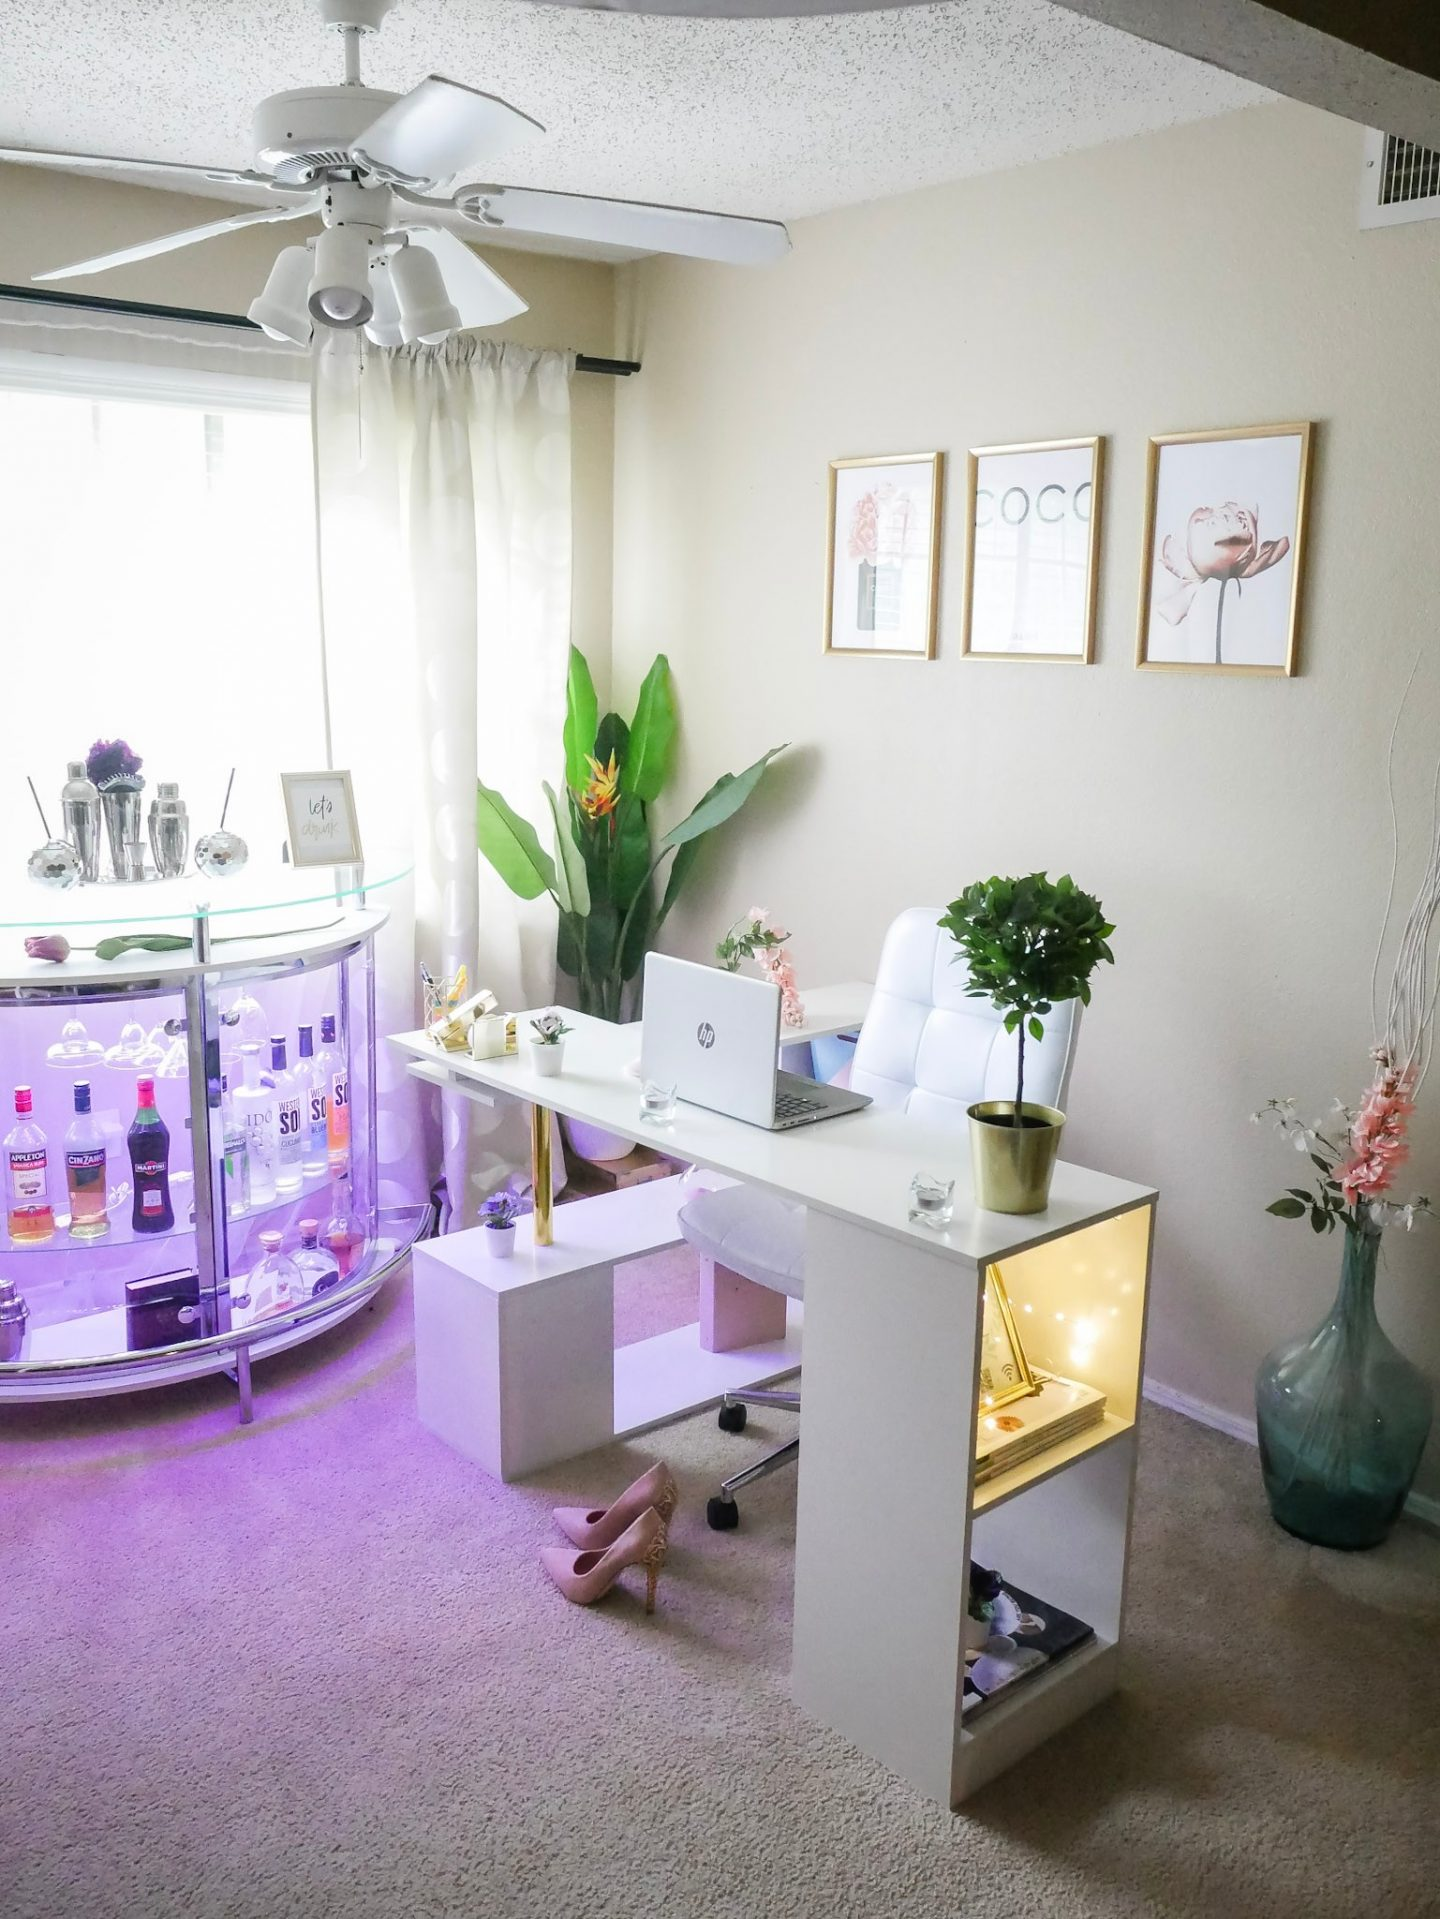 How to Create a Chic Home Office on a Budget